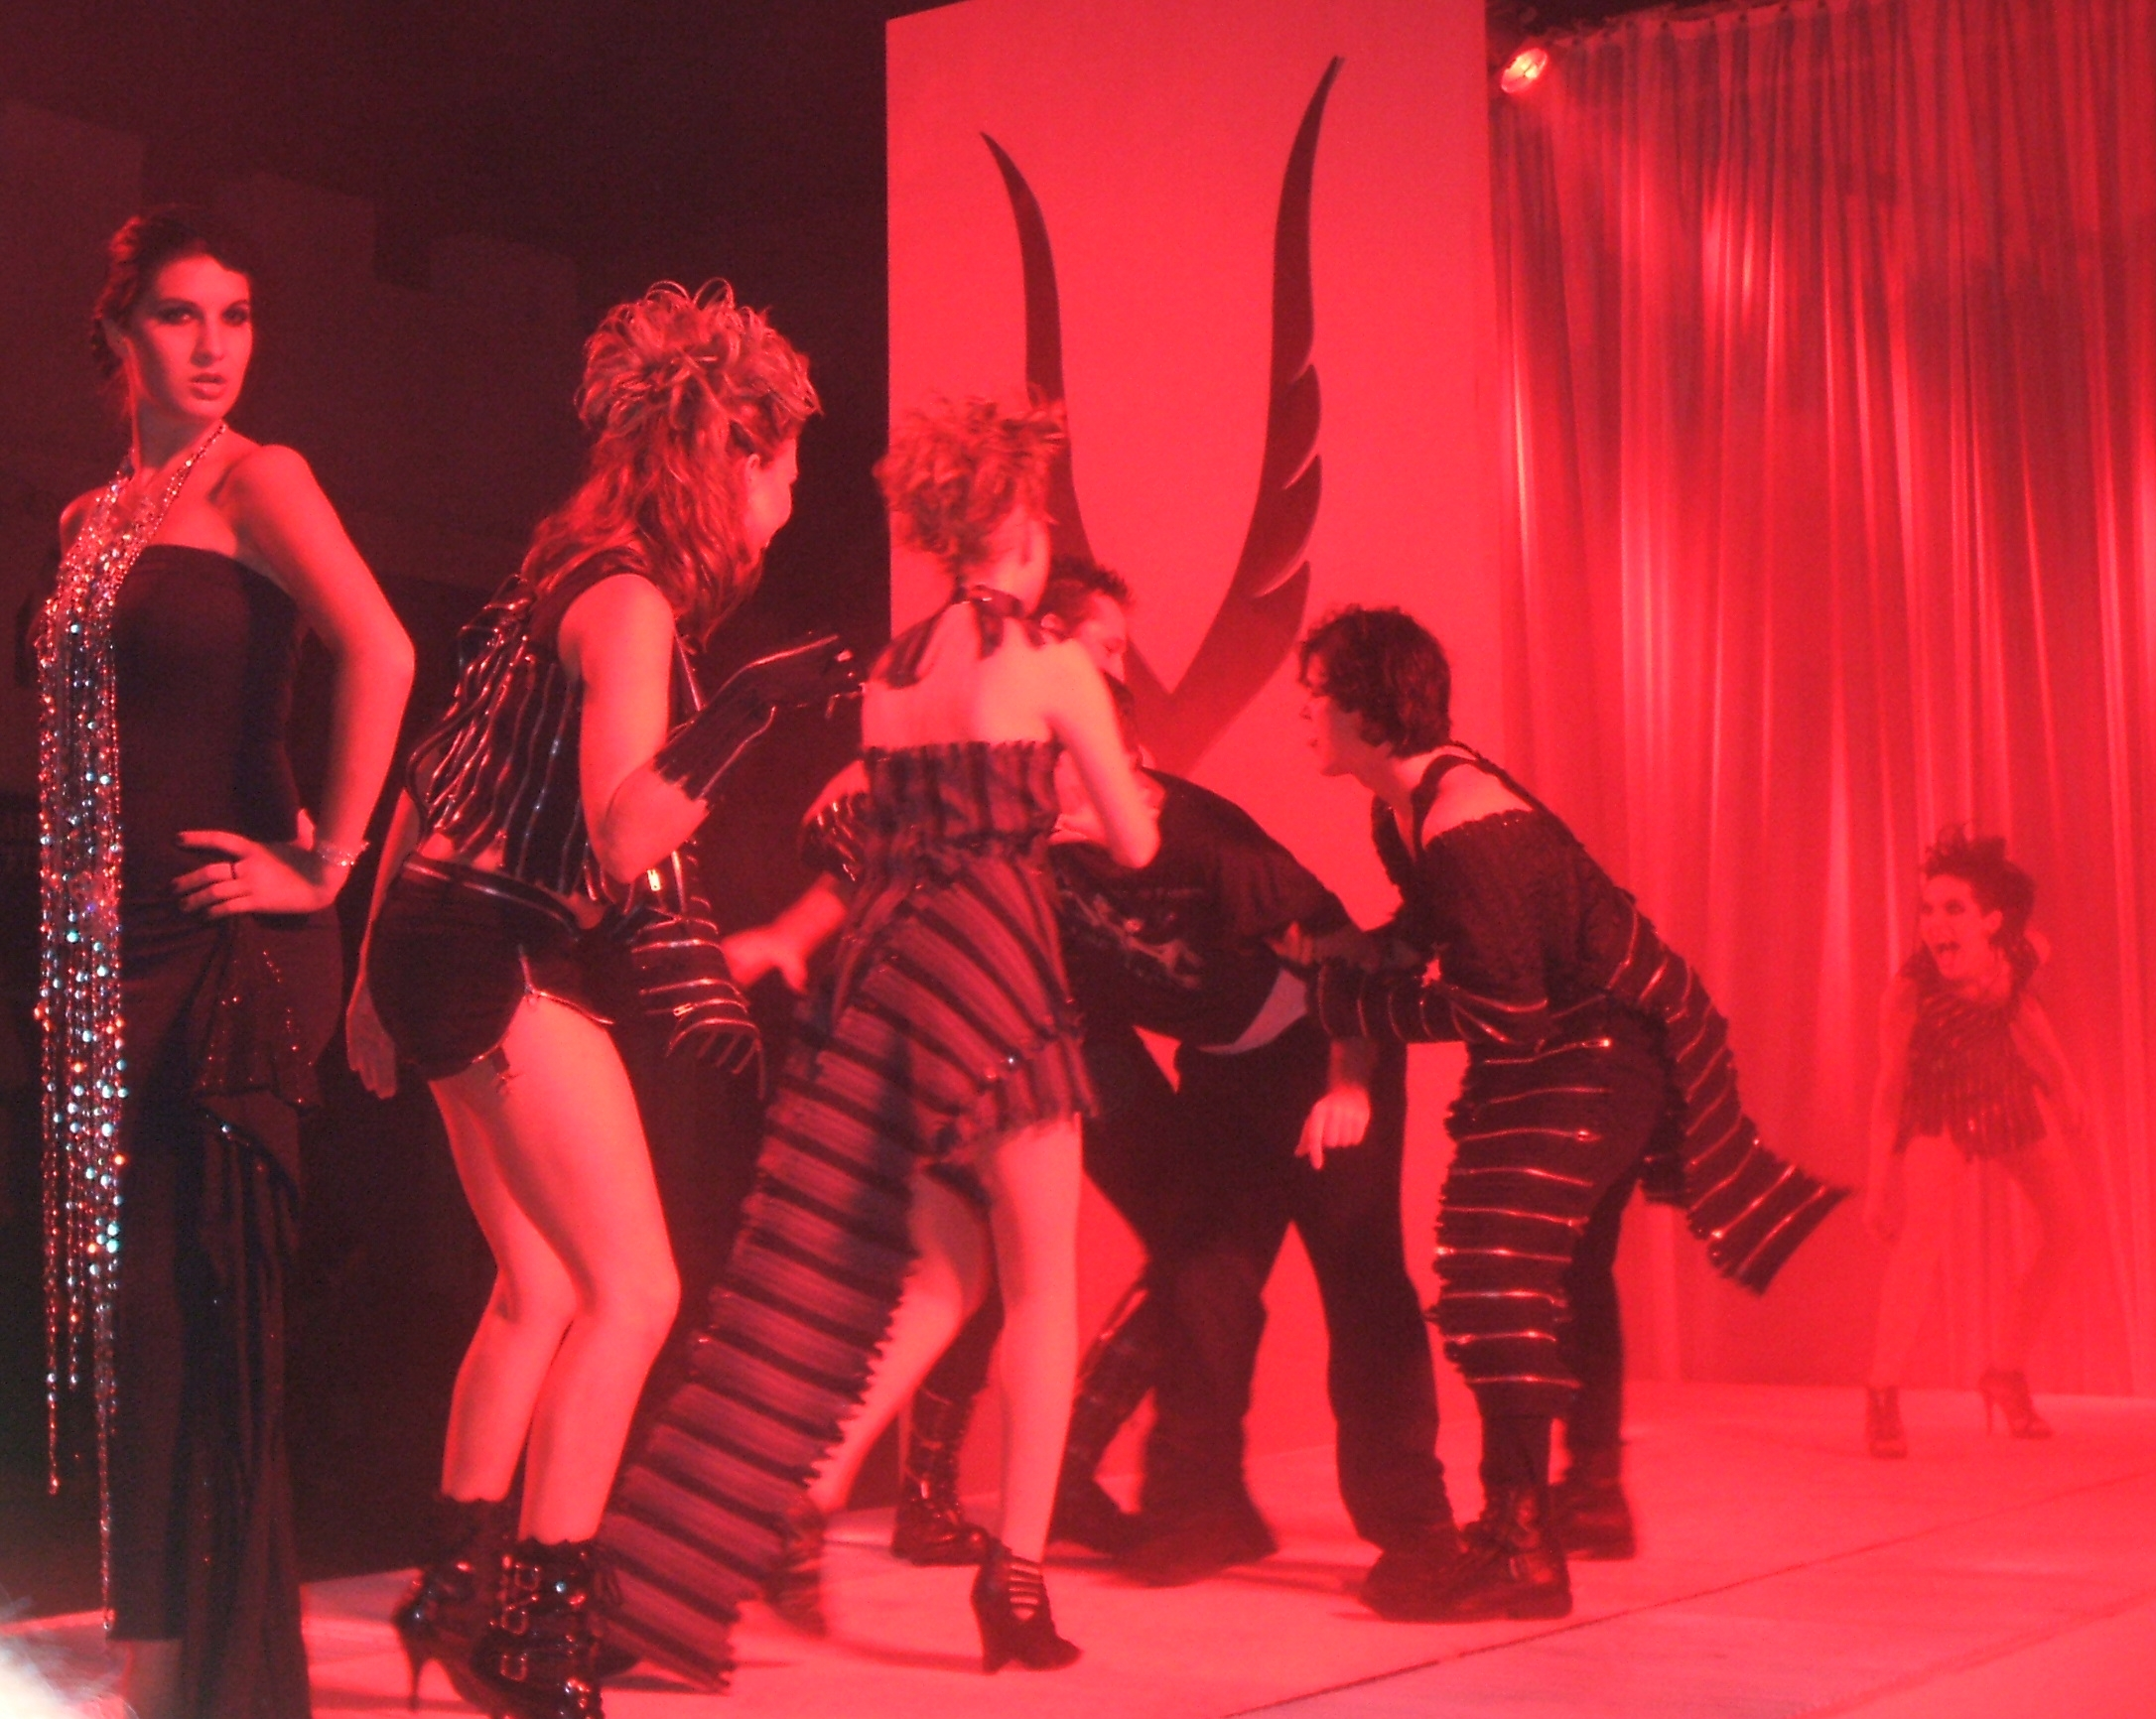 A Fashion Show Turns Ghoulish at the House of Vayne